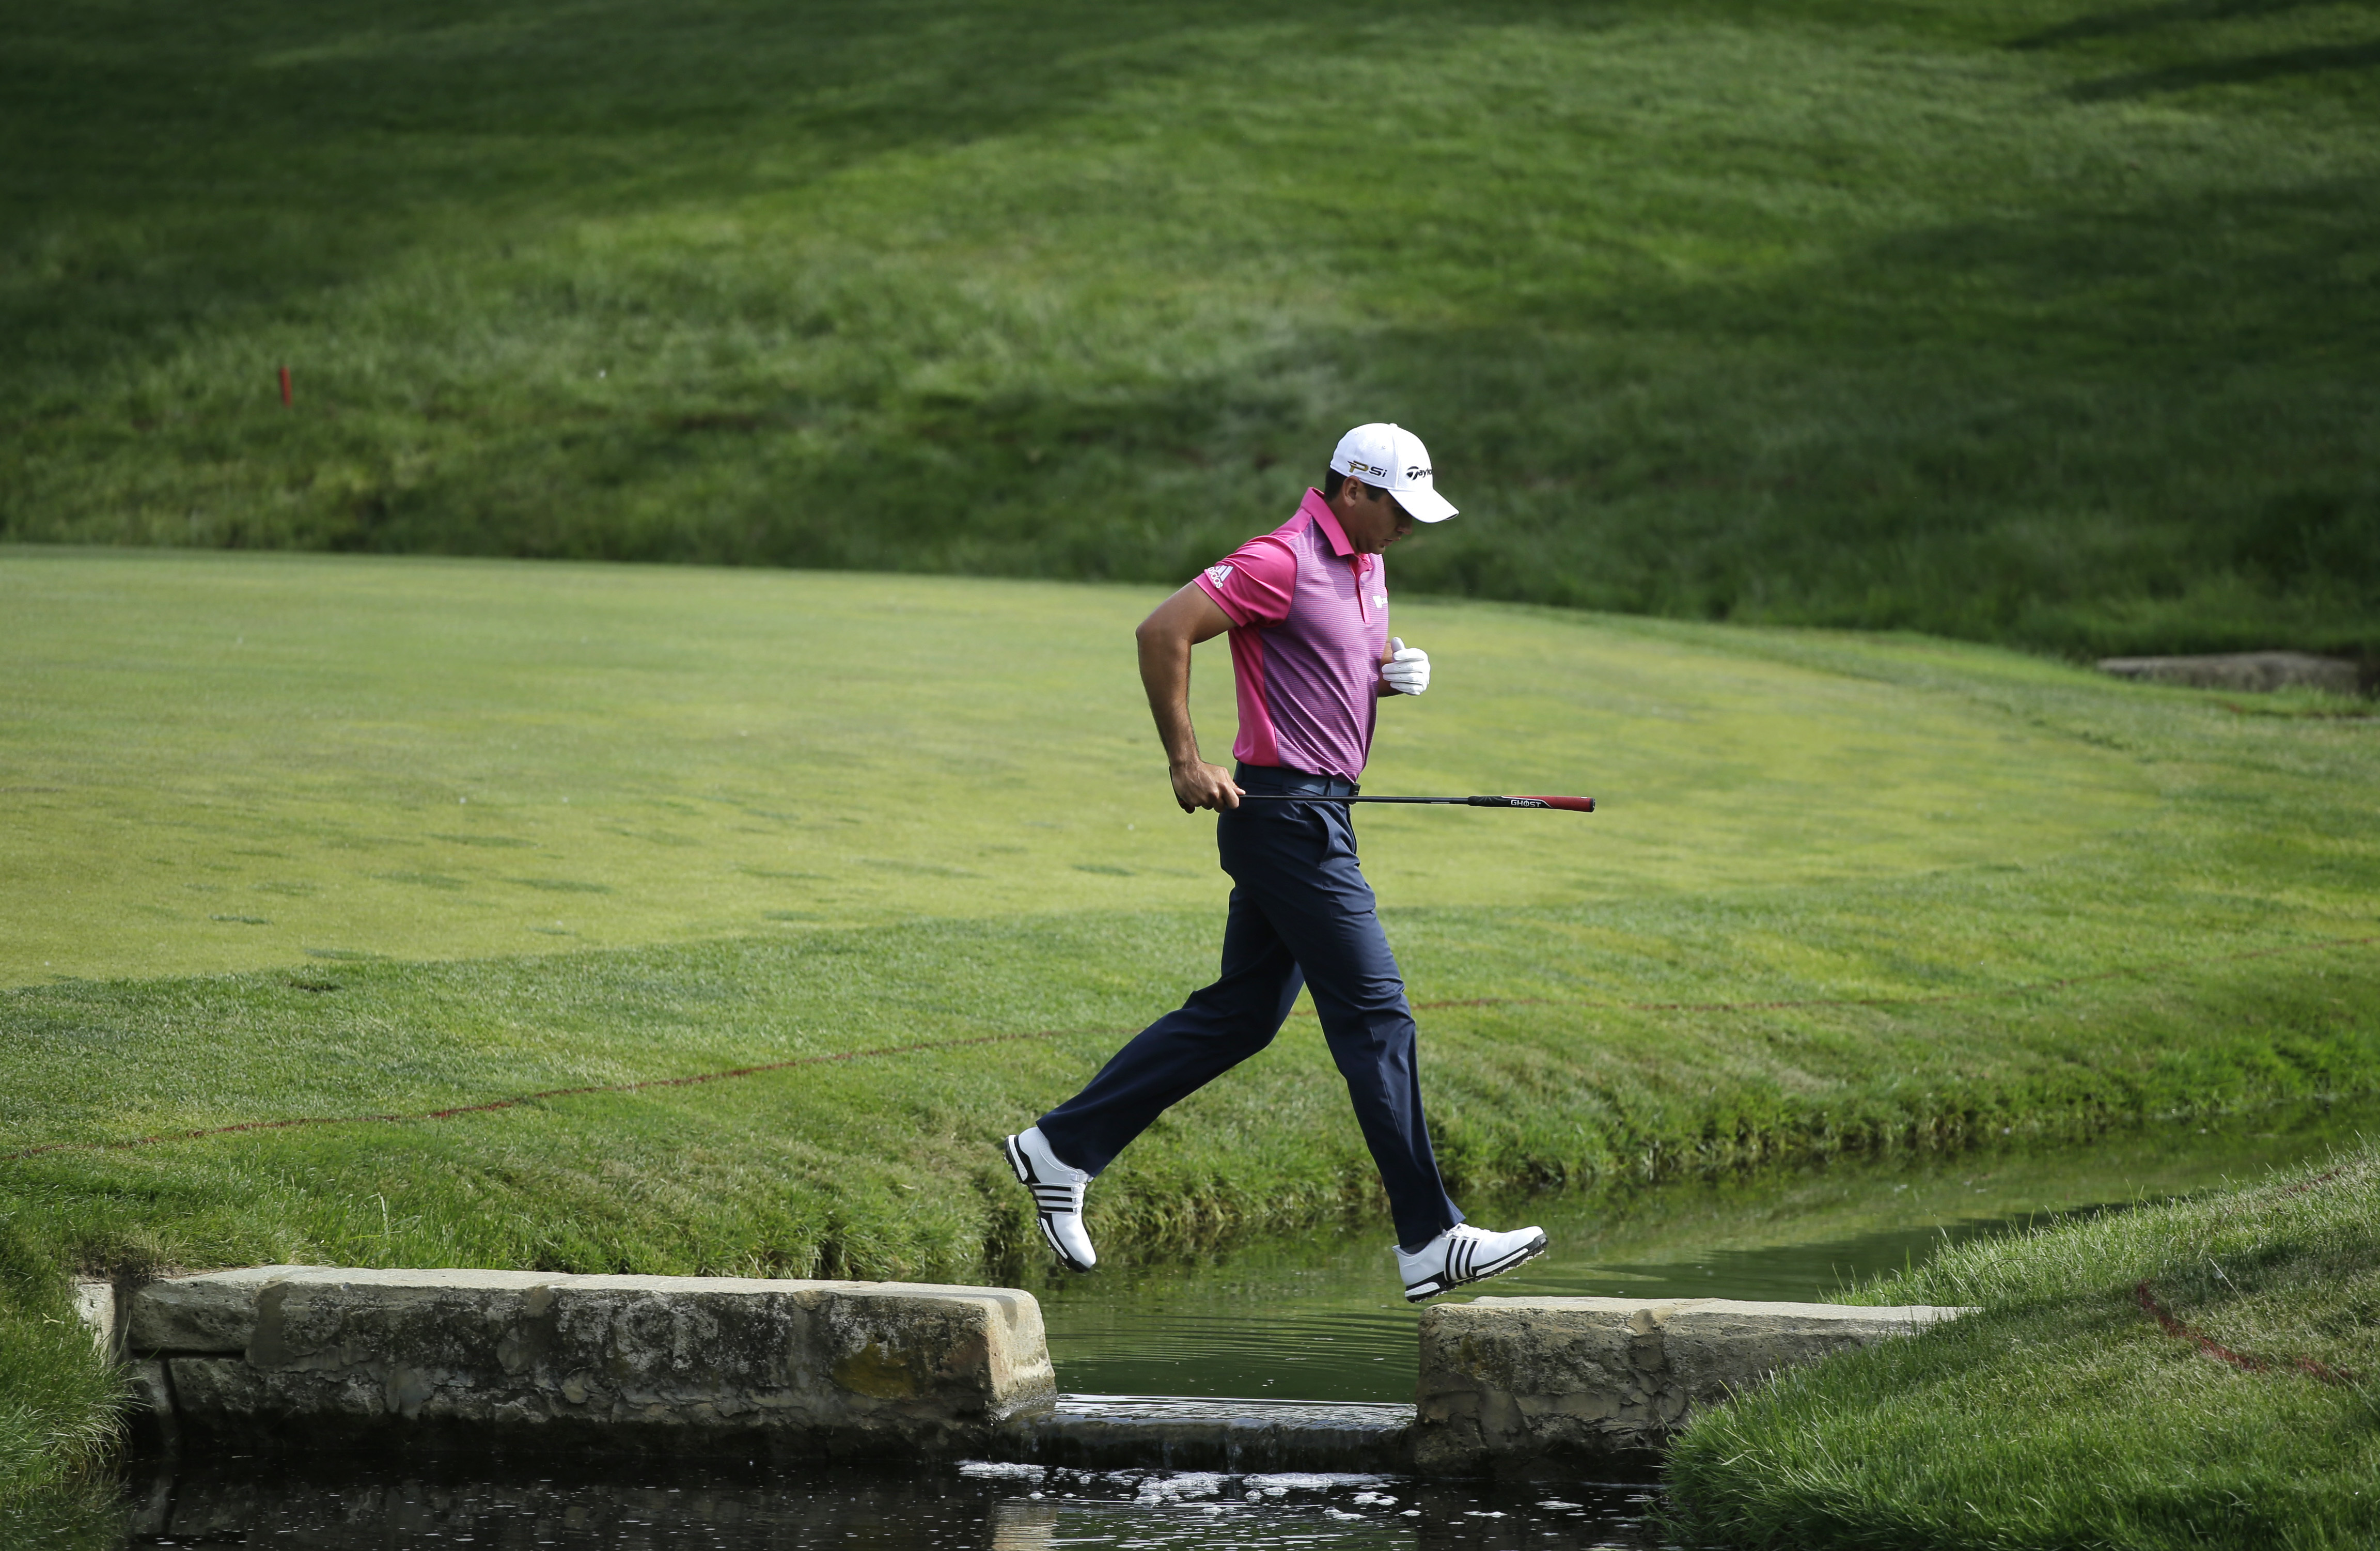 Jason Day, of Australia, walks to the 14th green during the second round of the Memorial golf tournament, Friday, June 3, 2016, in Dublin, Ohio. (AP Photo/Darron Cummings)